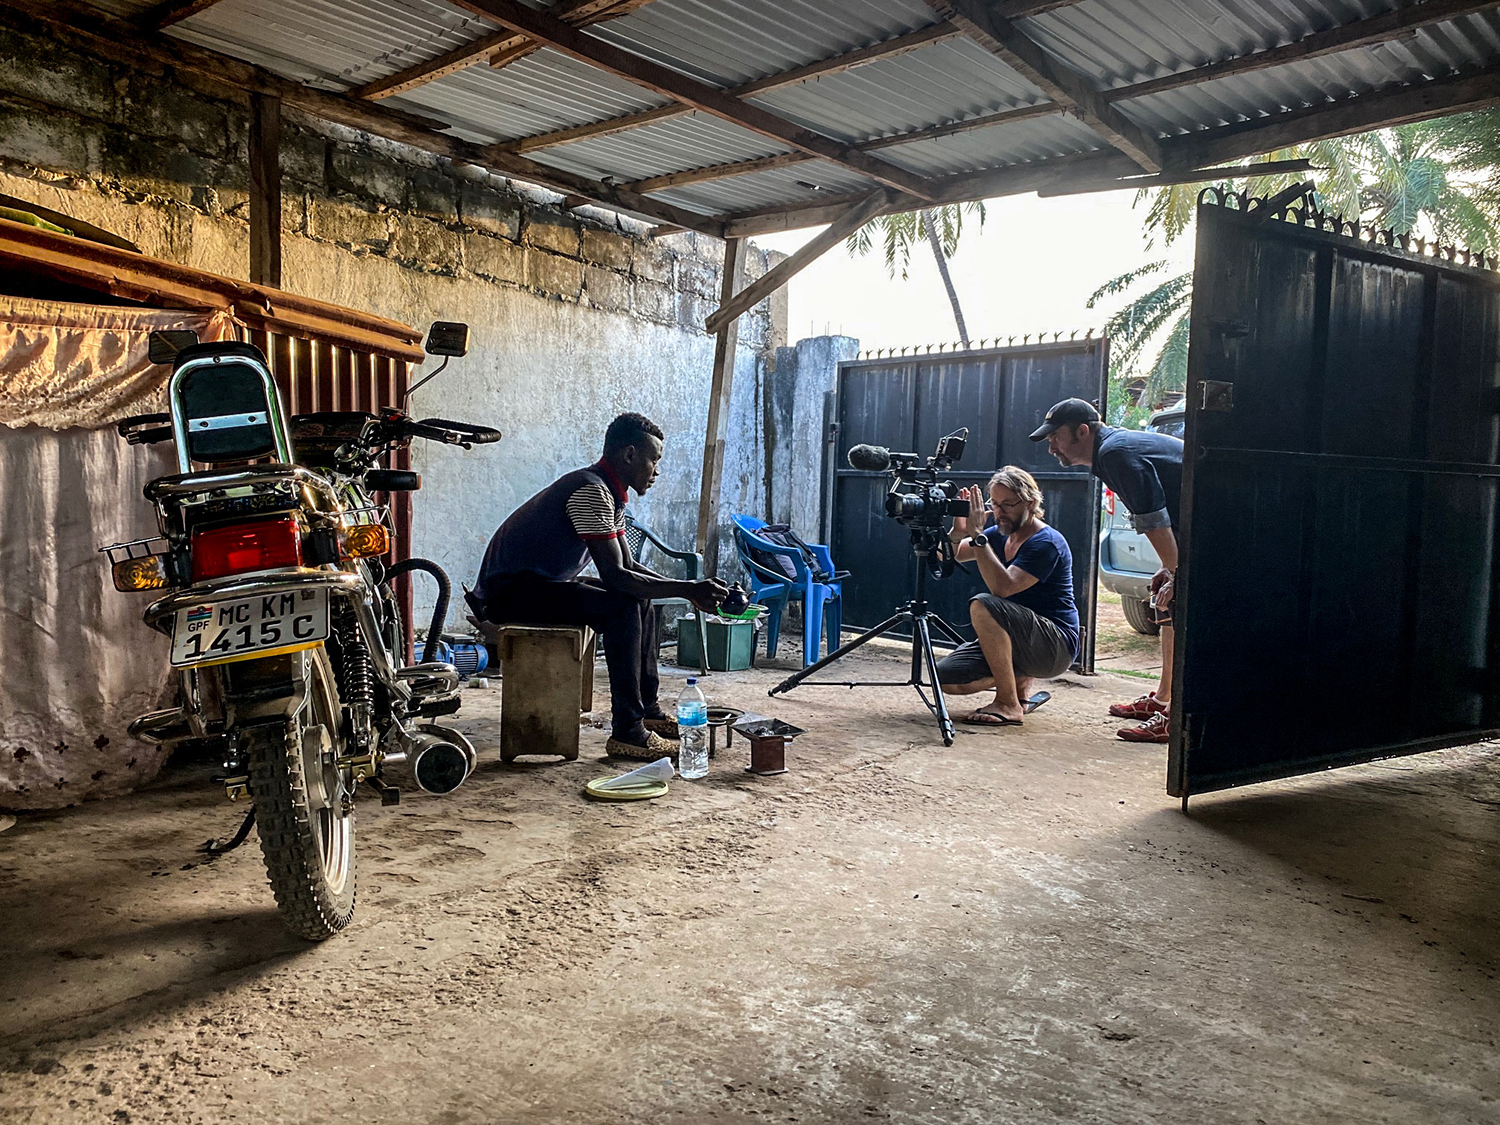 Photographer, Jason Florio, films an interview with a young Gambian man who is sitting in by an open gate, making attaya tea, next to a motorcycle, The Gambia, West Africa , Image ©Helen Jones-Florio